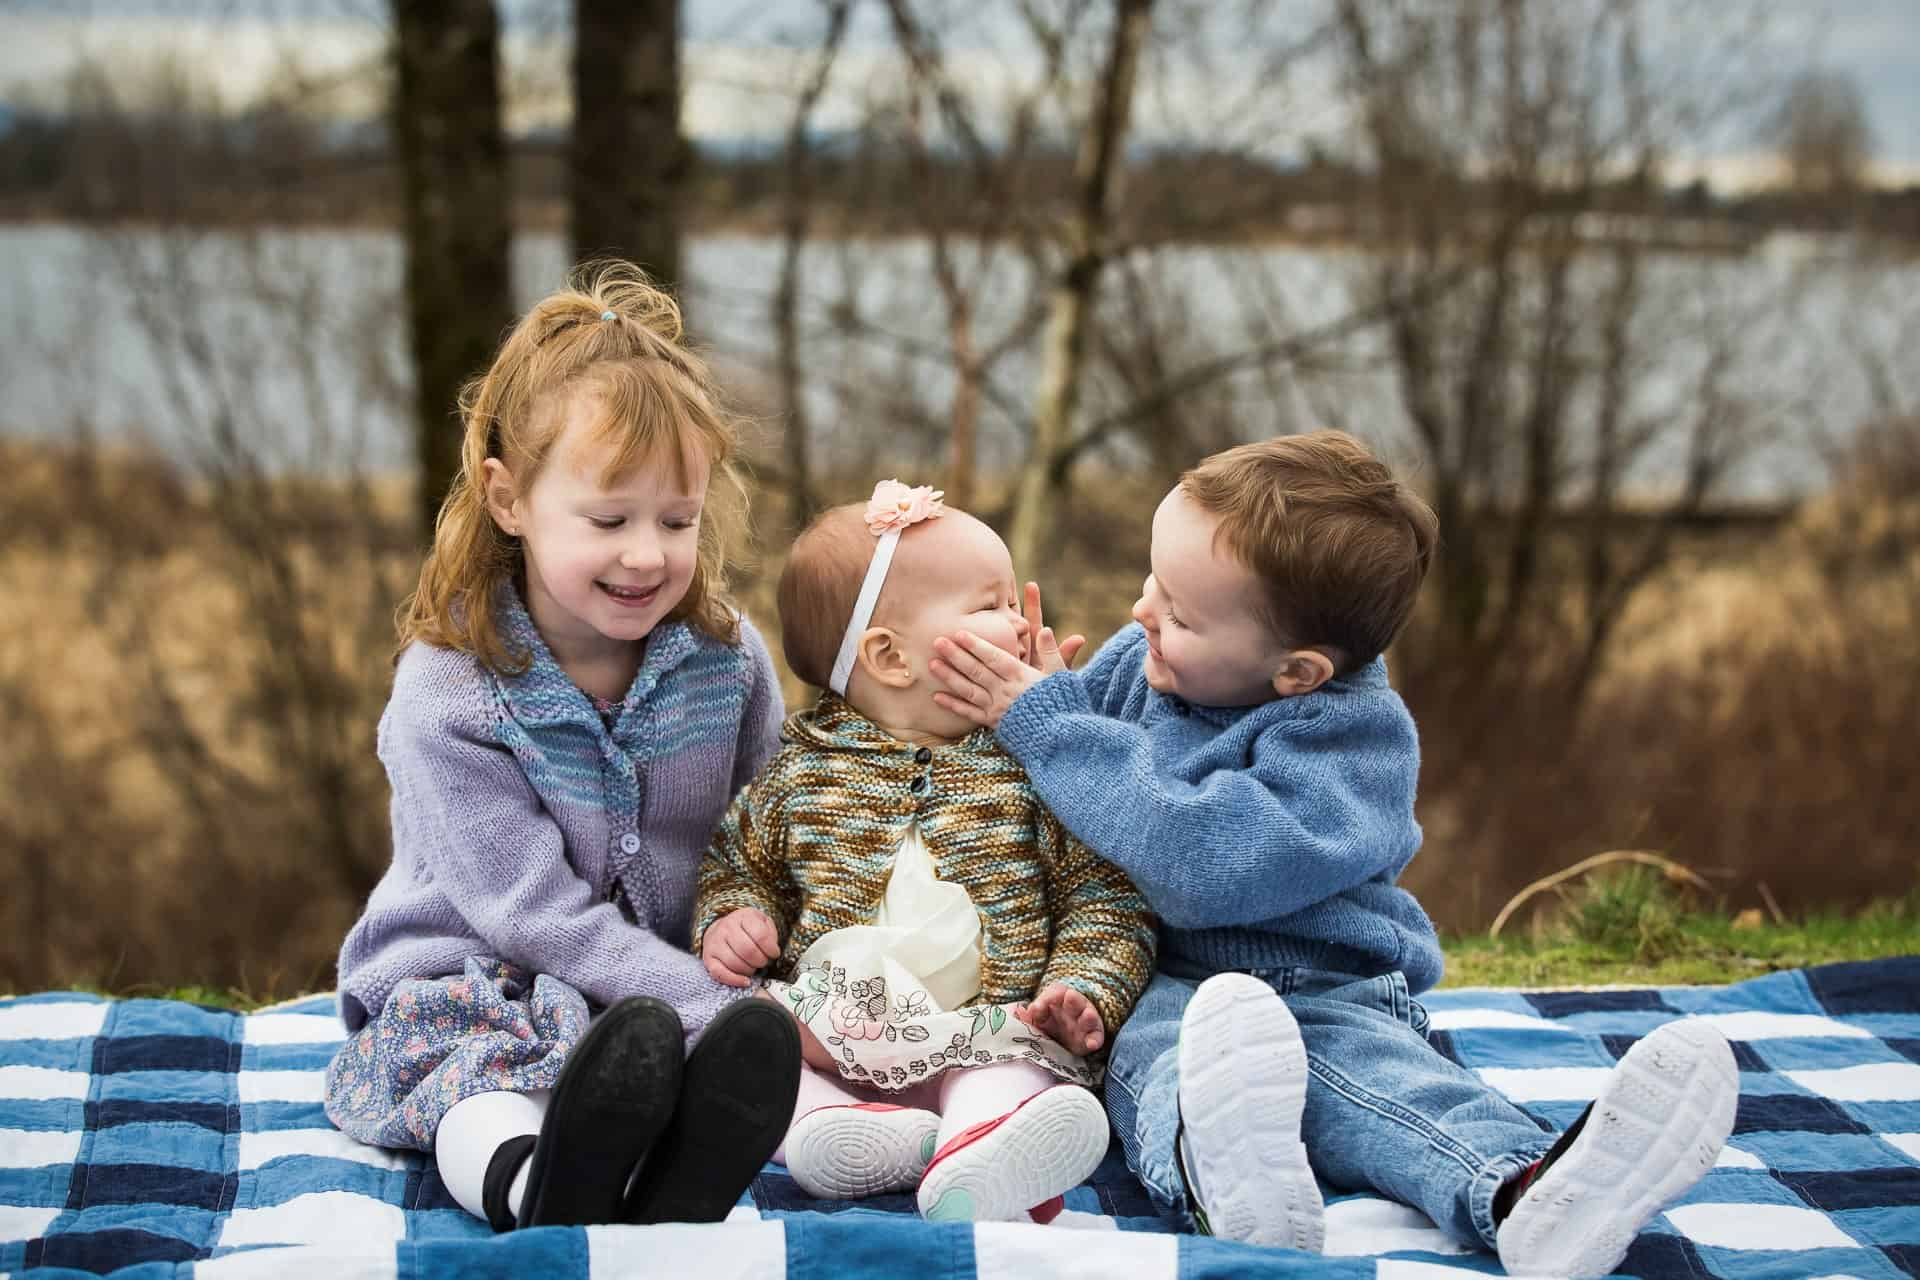 Three kids on blanket by river with brother squishing baby sister's cheeks